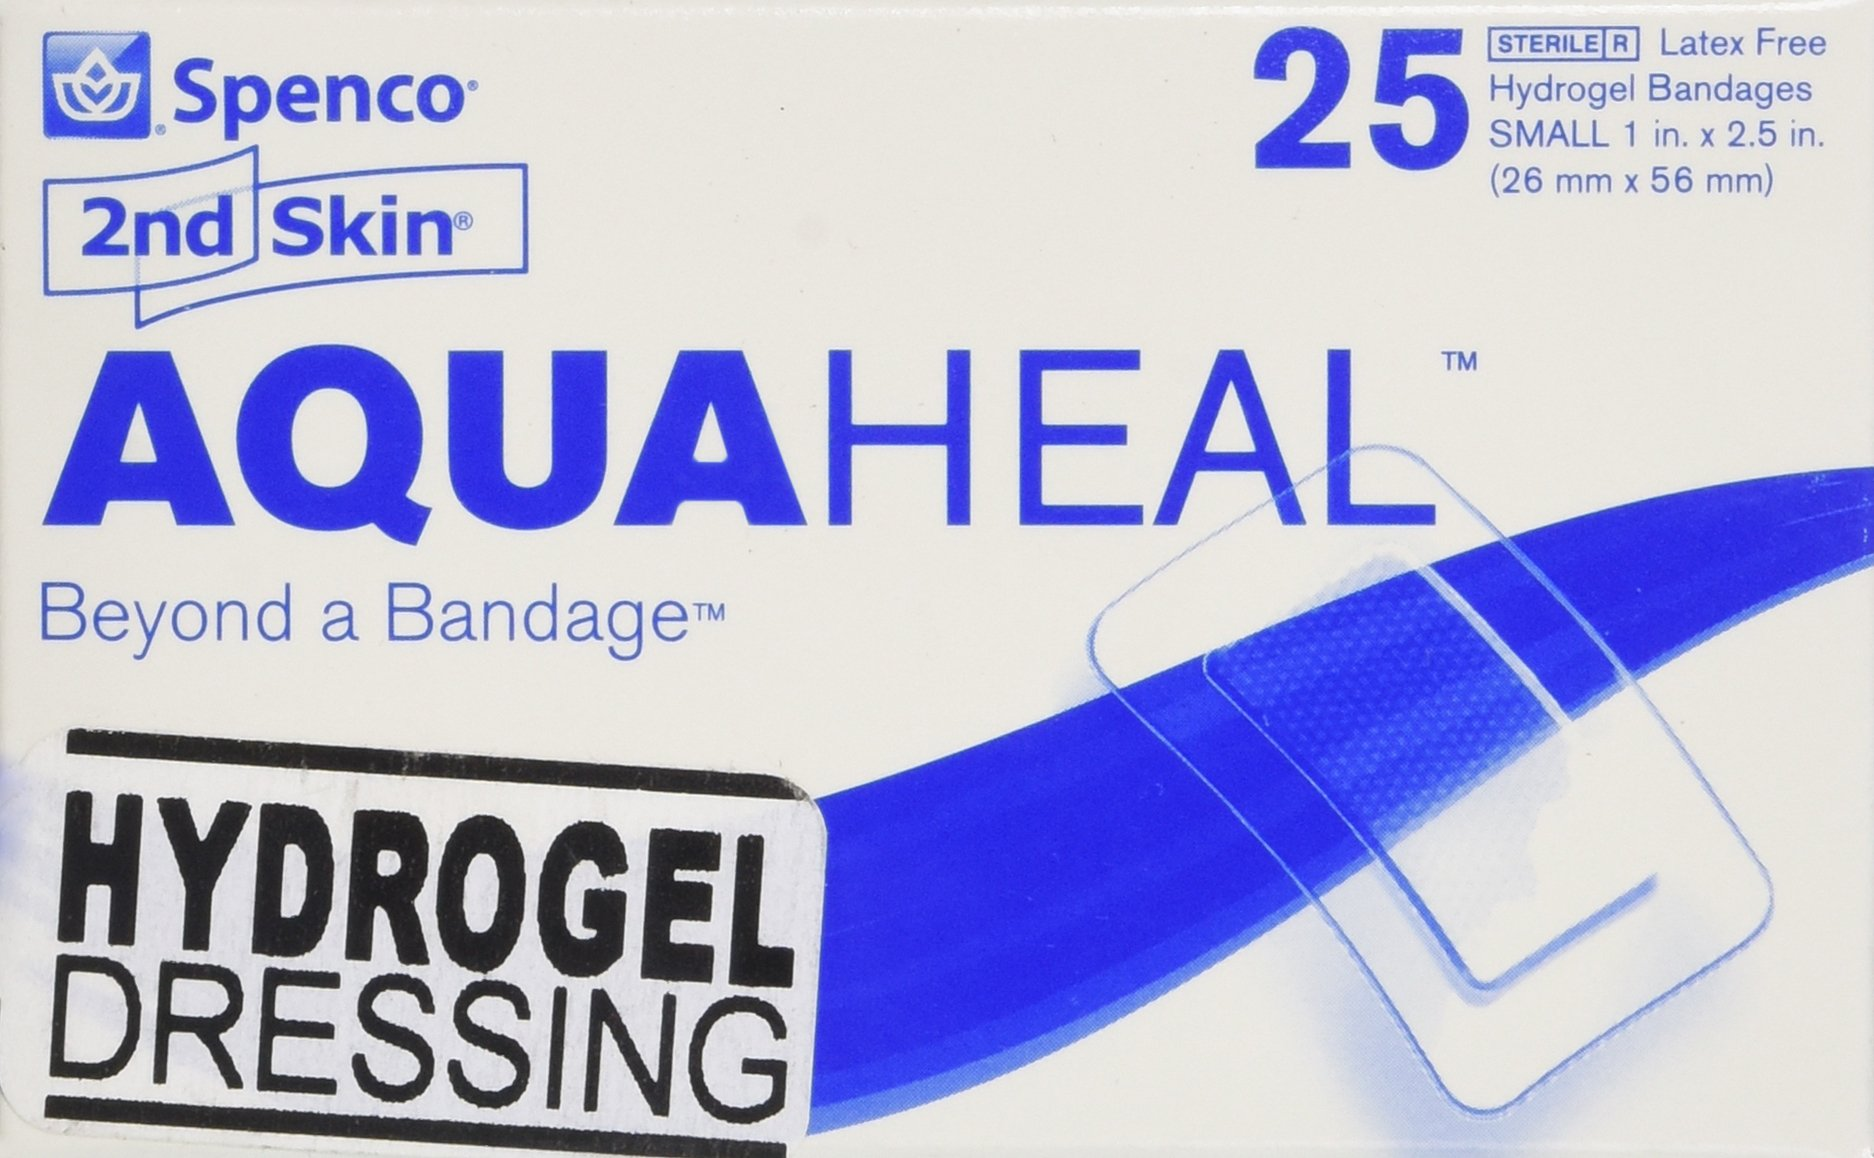 Spenco 2nd Skin Aquaheal Hydrogel Bandages, Medical Small Size 25-Count